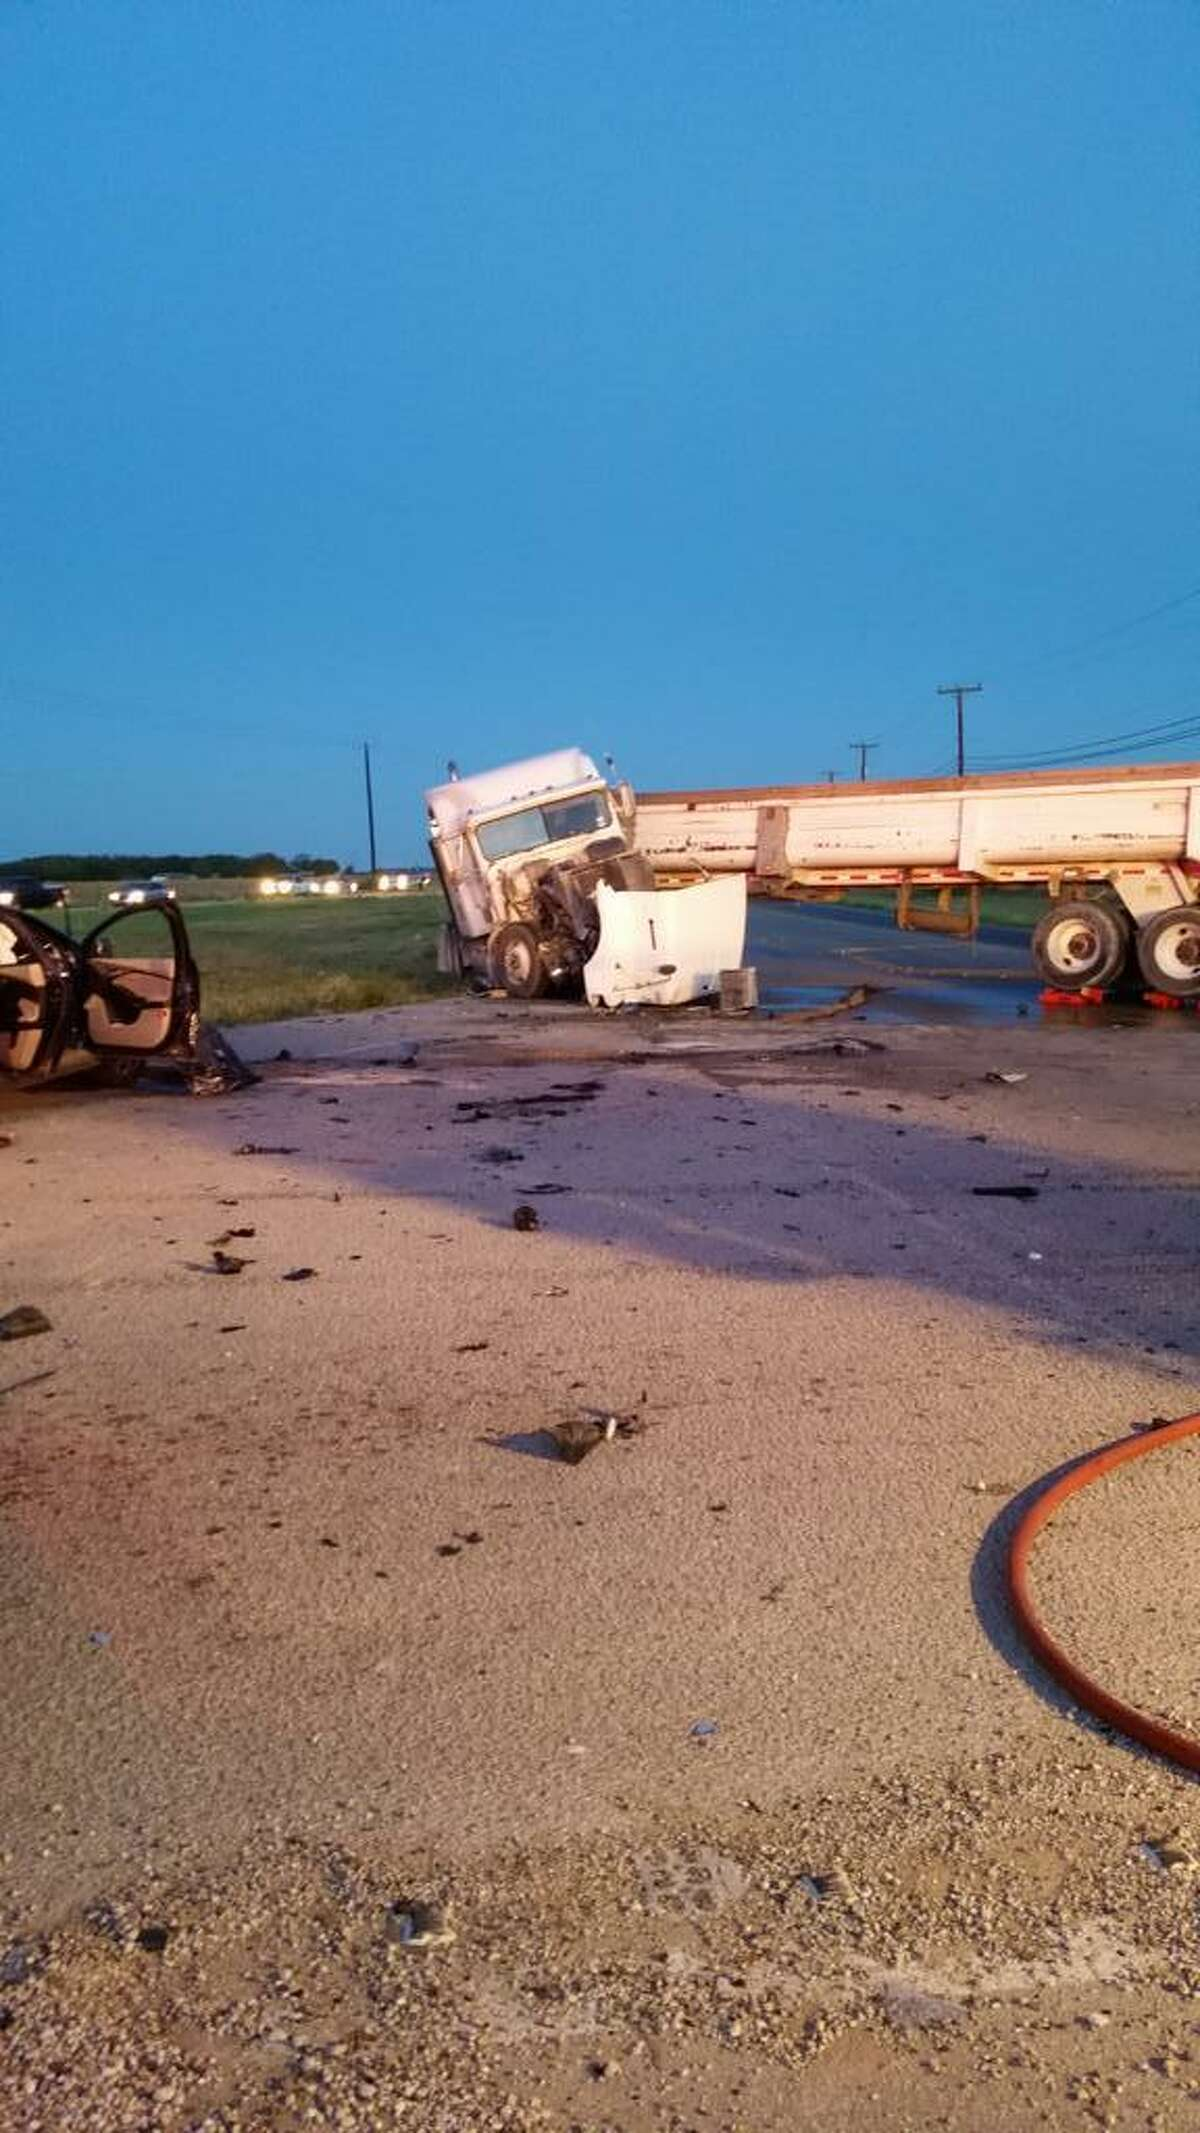 One person is dead after an 18-wheeler swerved to miss a school bus and collided head on with a passenger vehicle at around 6 a.m. Friday in West Bexar County.